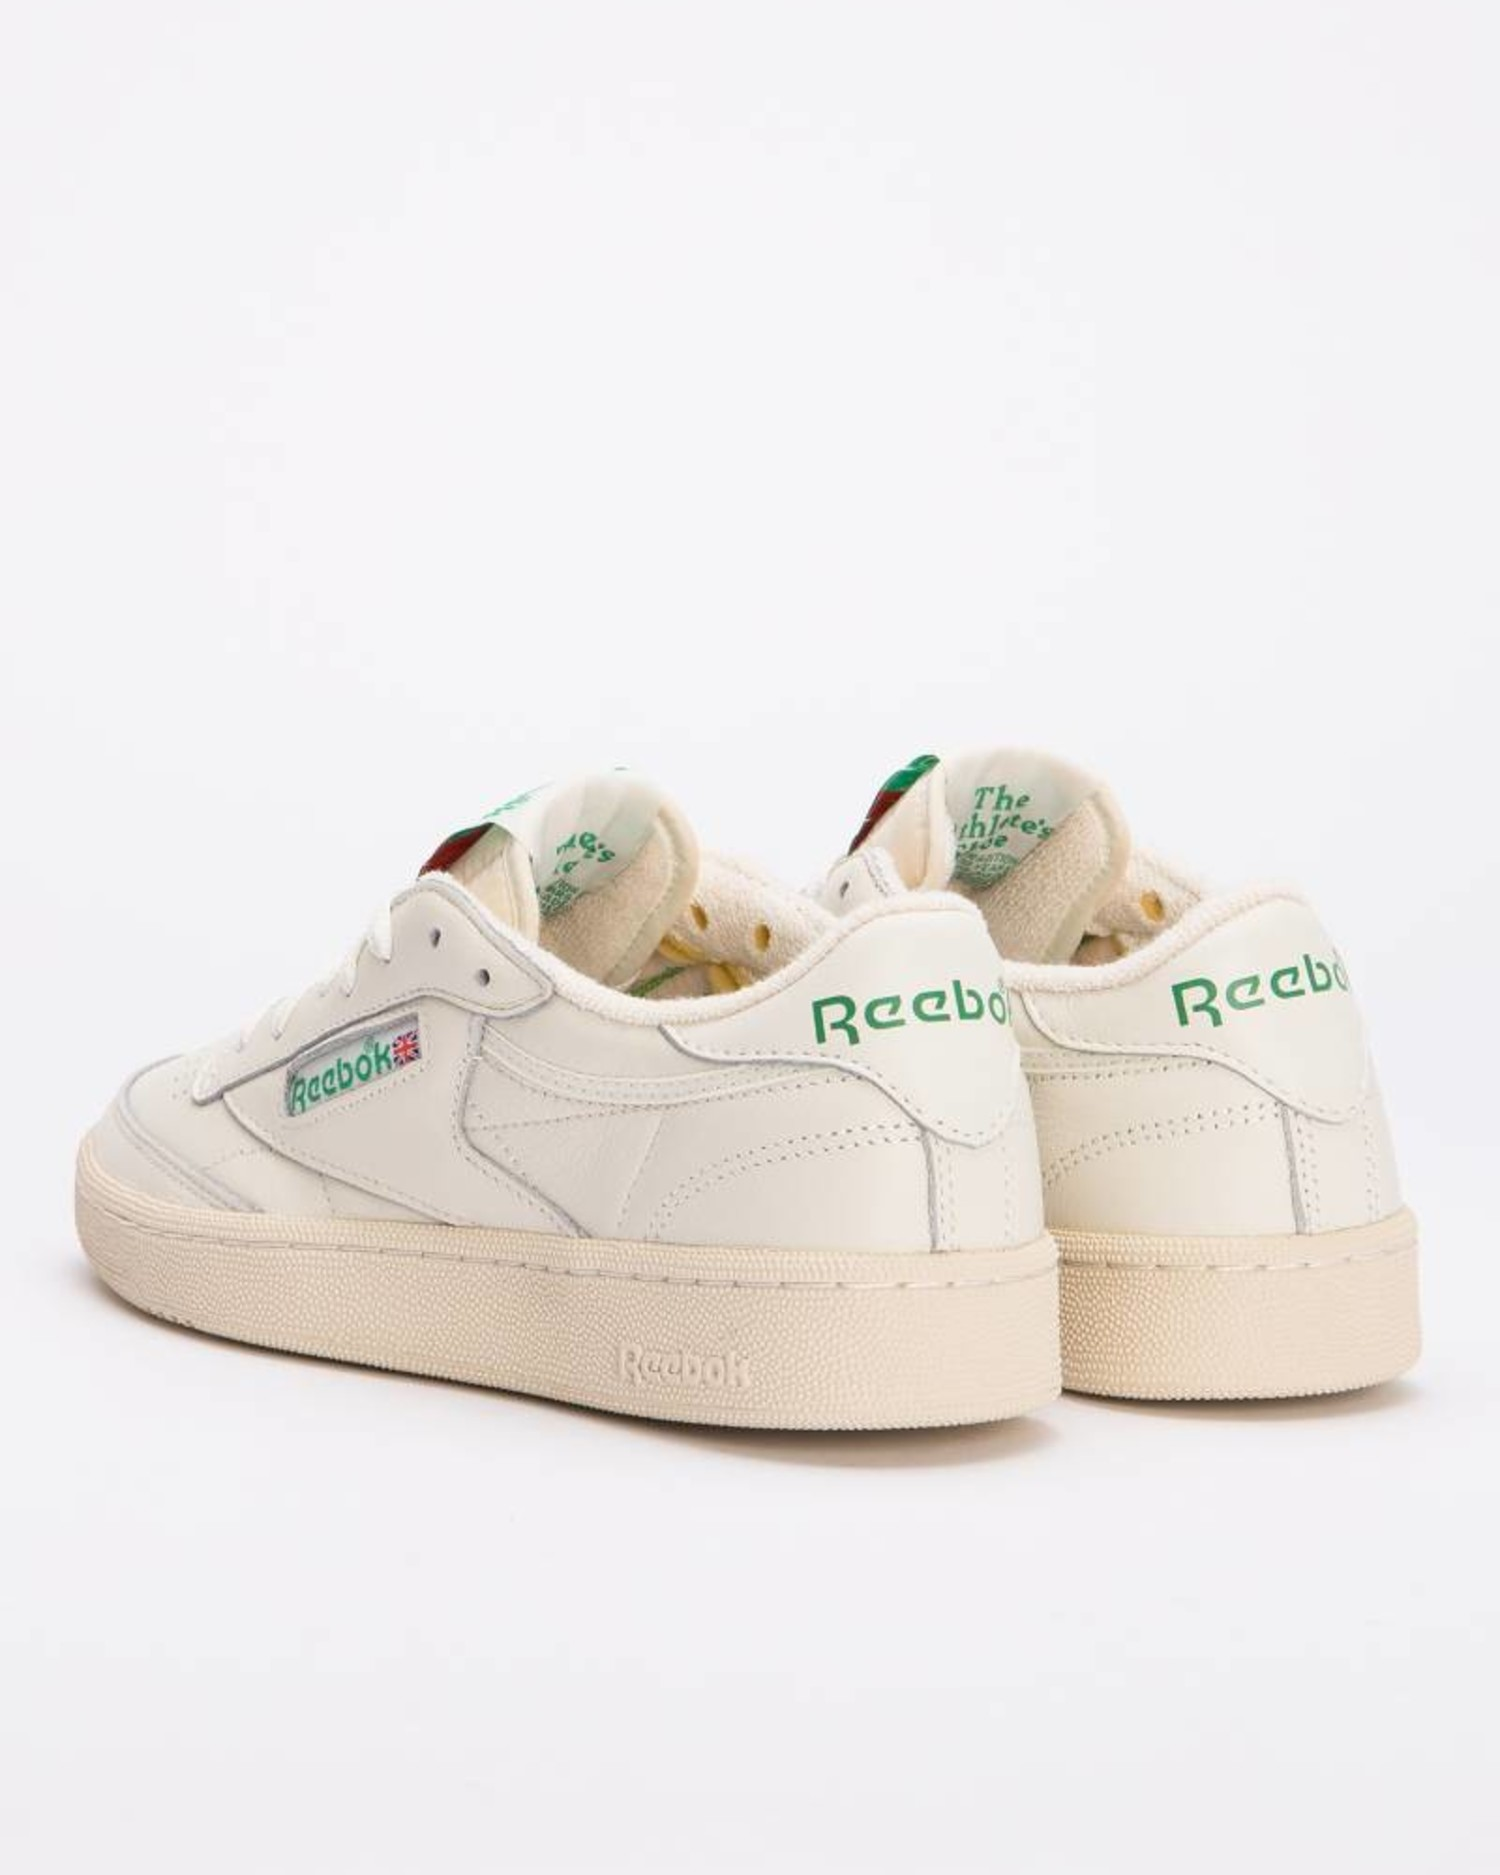 Reebok club c 1985 tv      chalk/paperwhite/gre